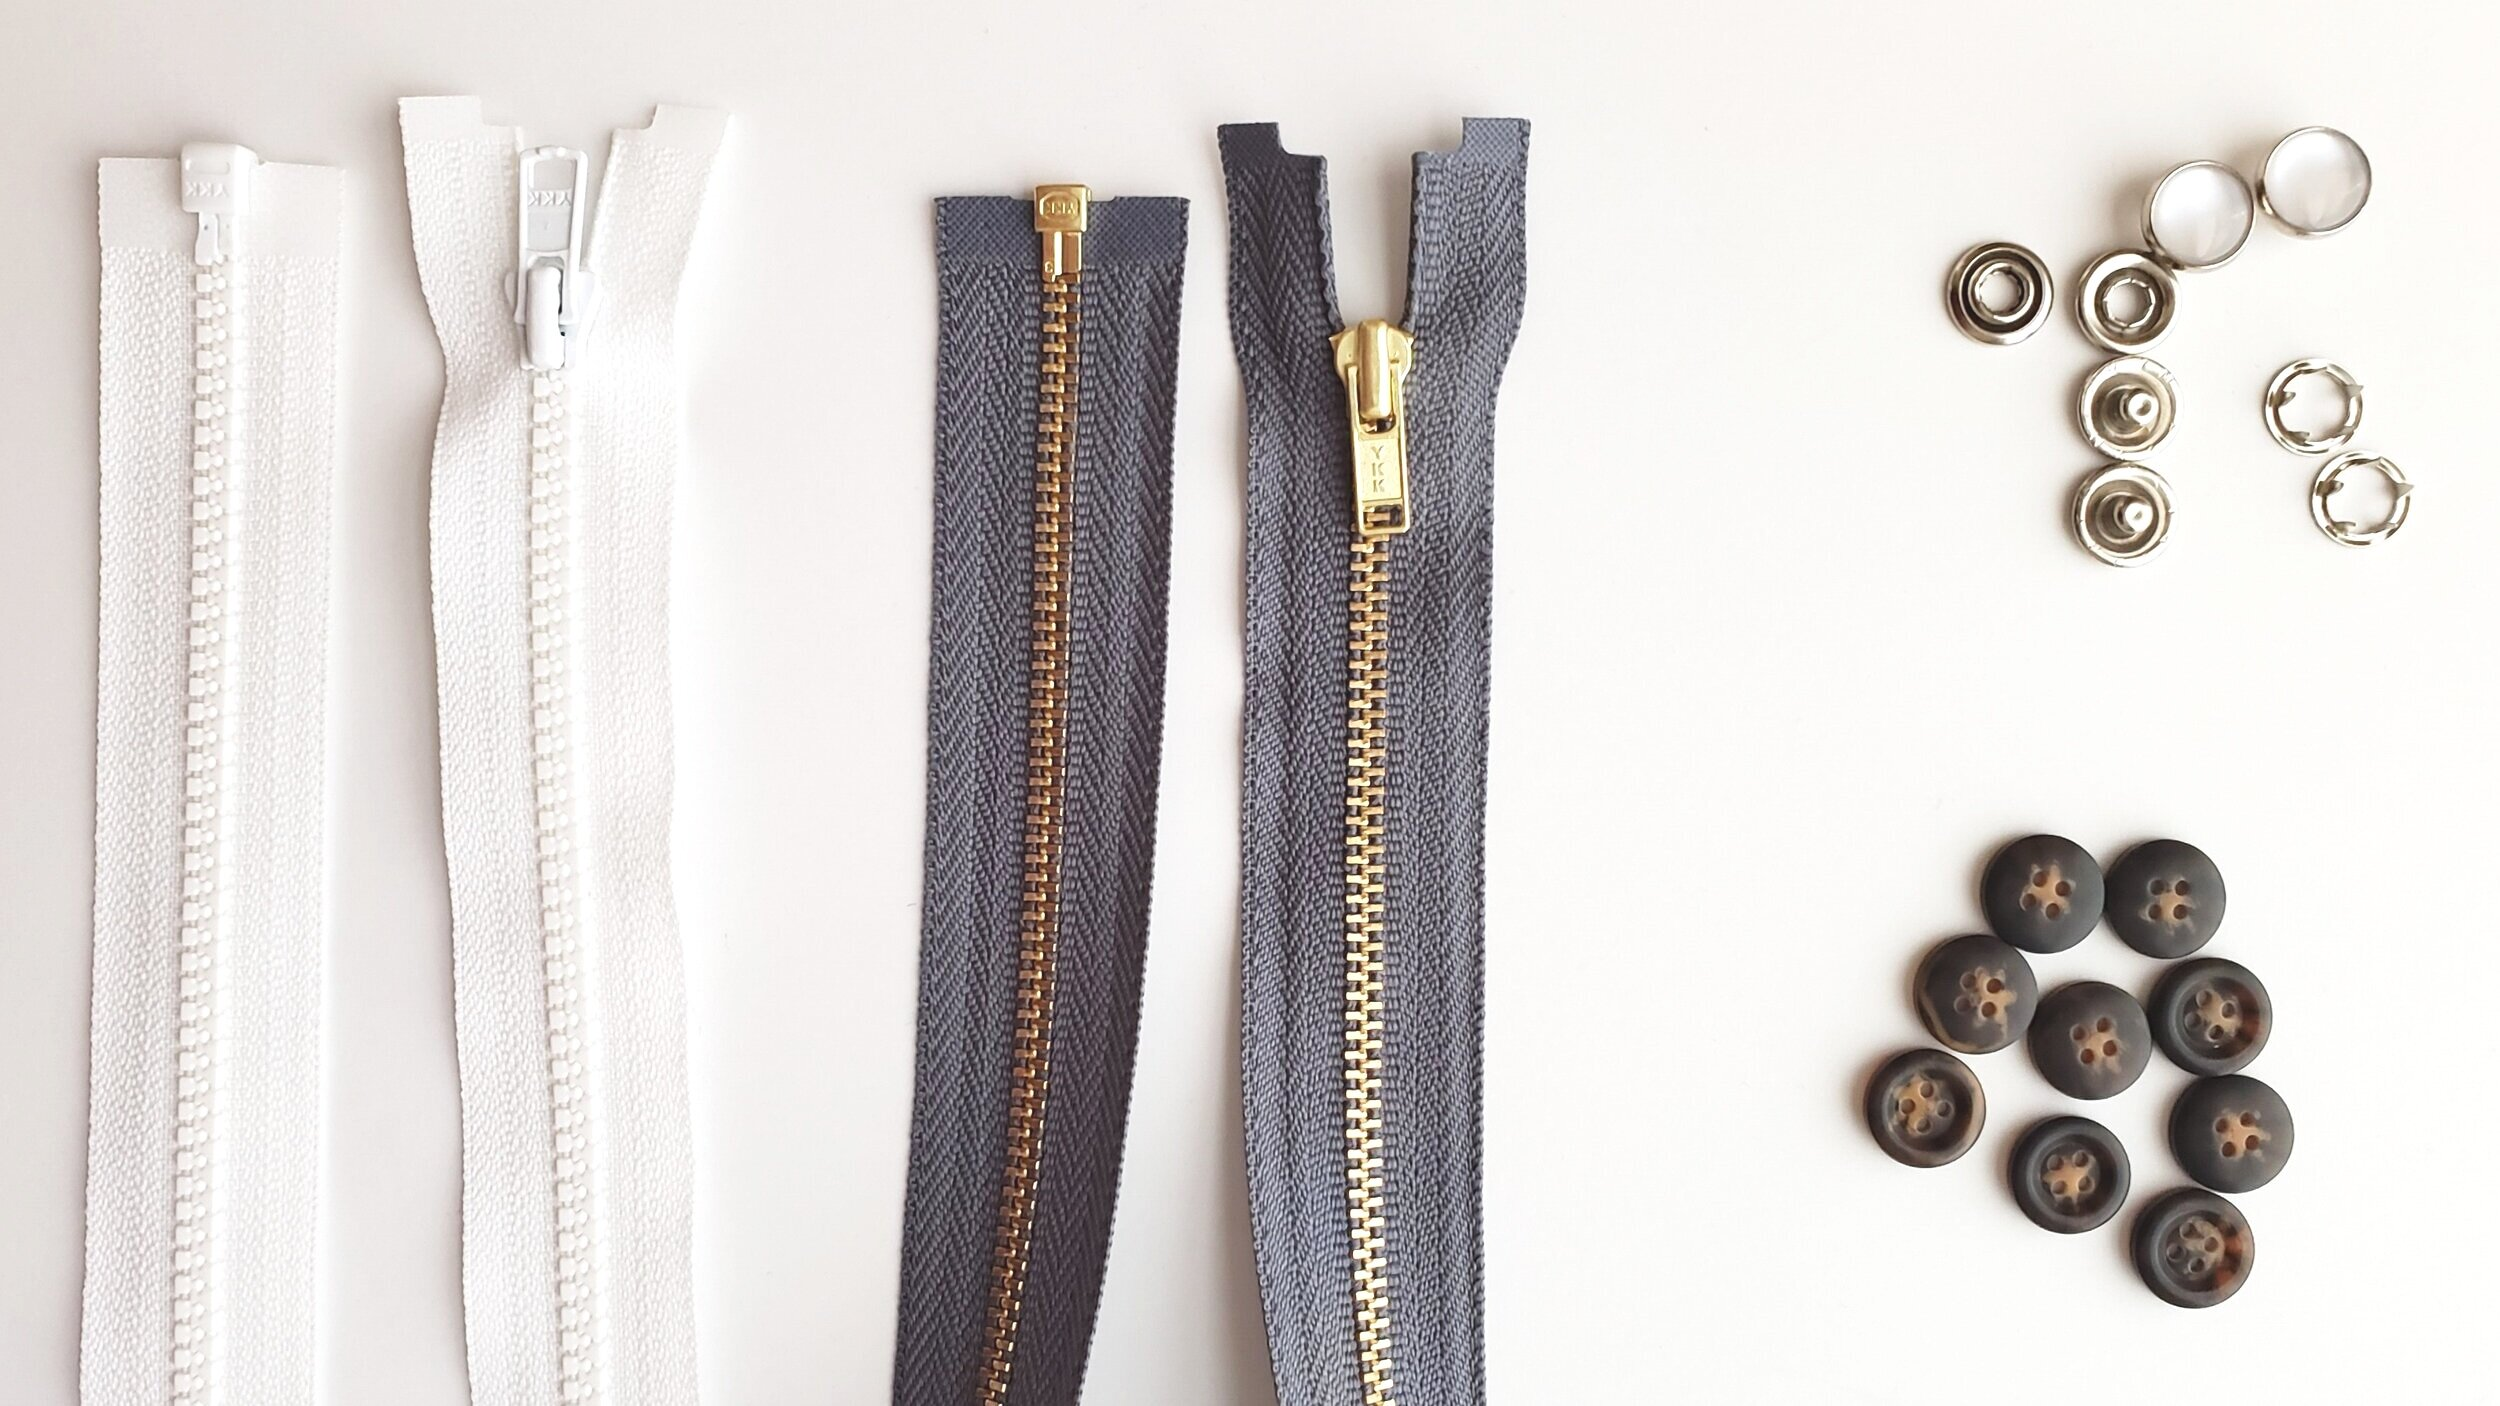 Left to right: #3 molded plastic separating jacket zipper, #3 brass separating jacket zipper, pearl snaps (top), and plastic buttons (bottom)